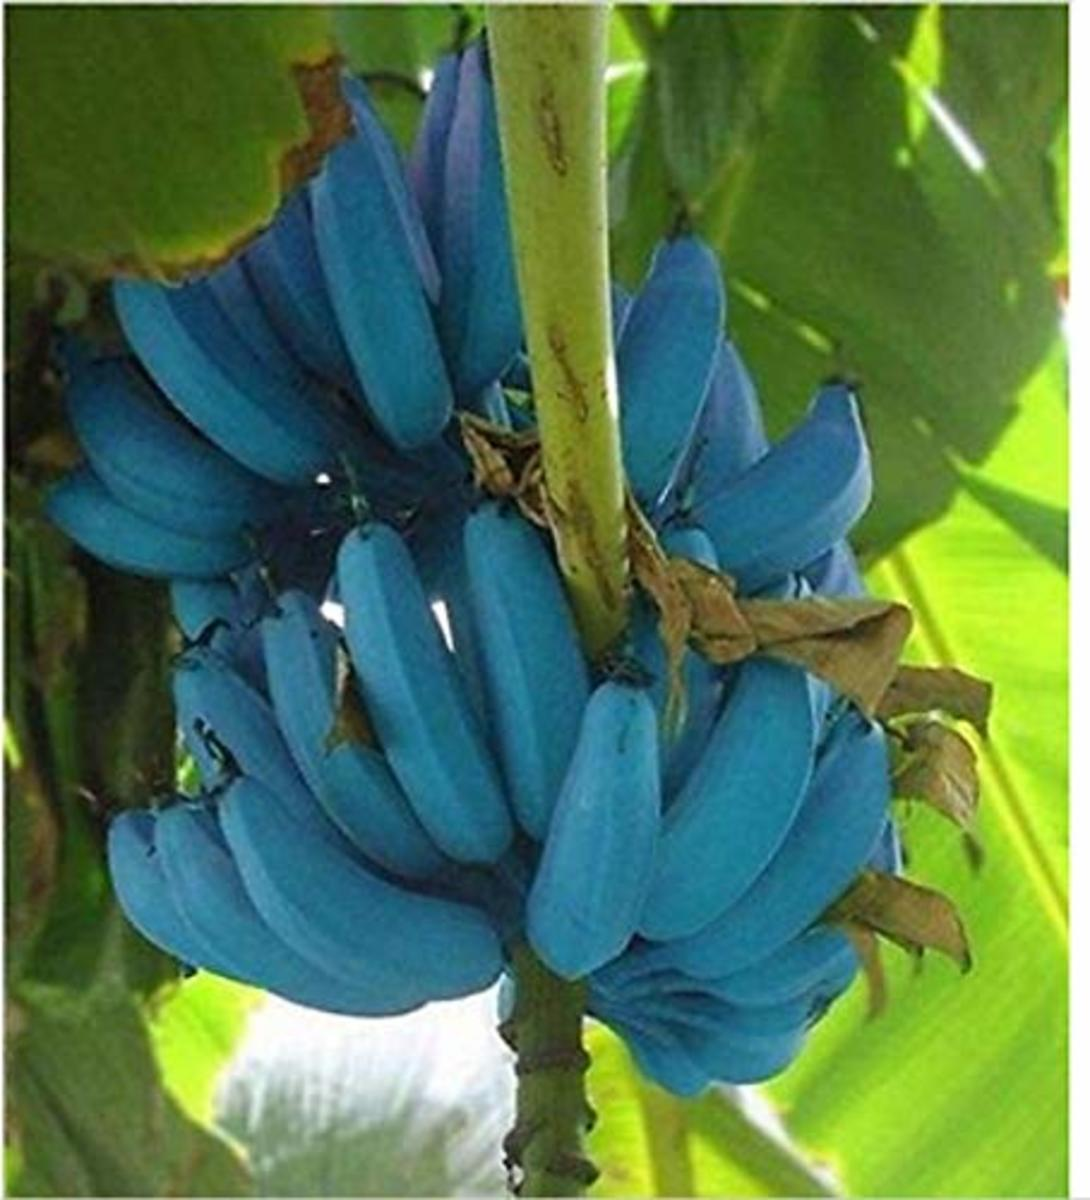 The banana of the future might be blue in color, which could once again provide a field day for songwriters and folksingers.